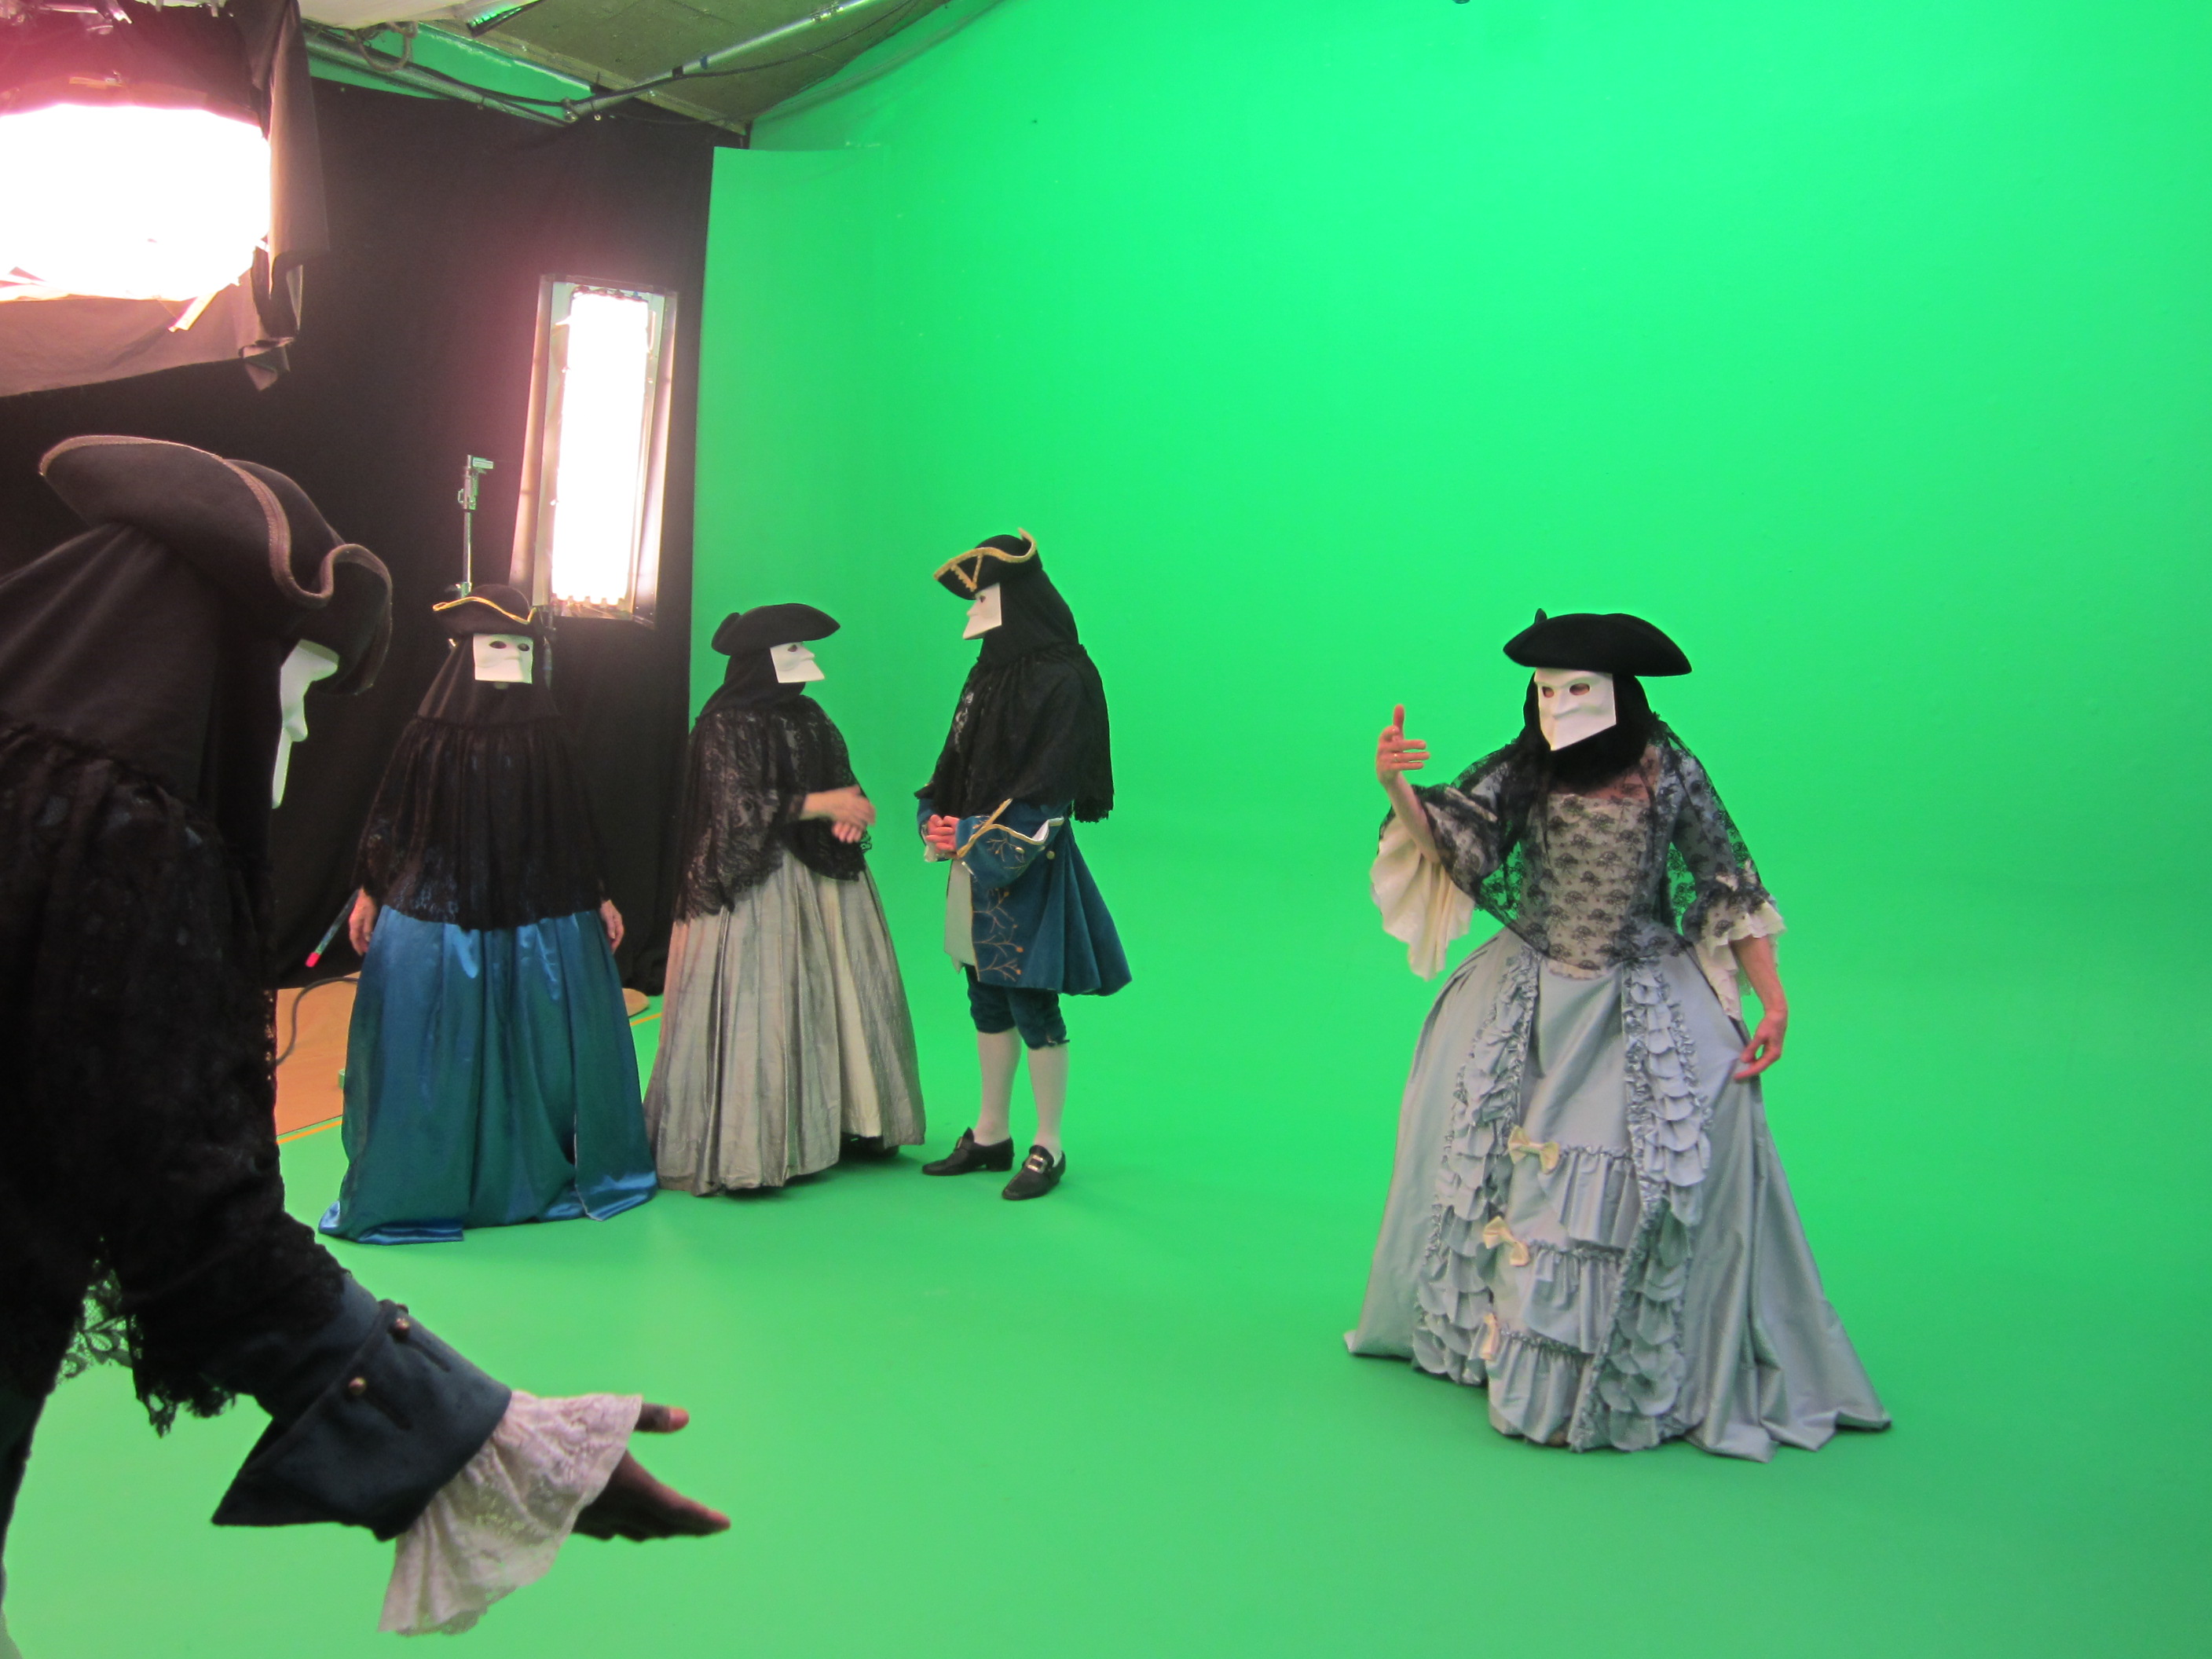 A cast in costume filming in front of a green screen